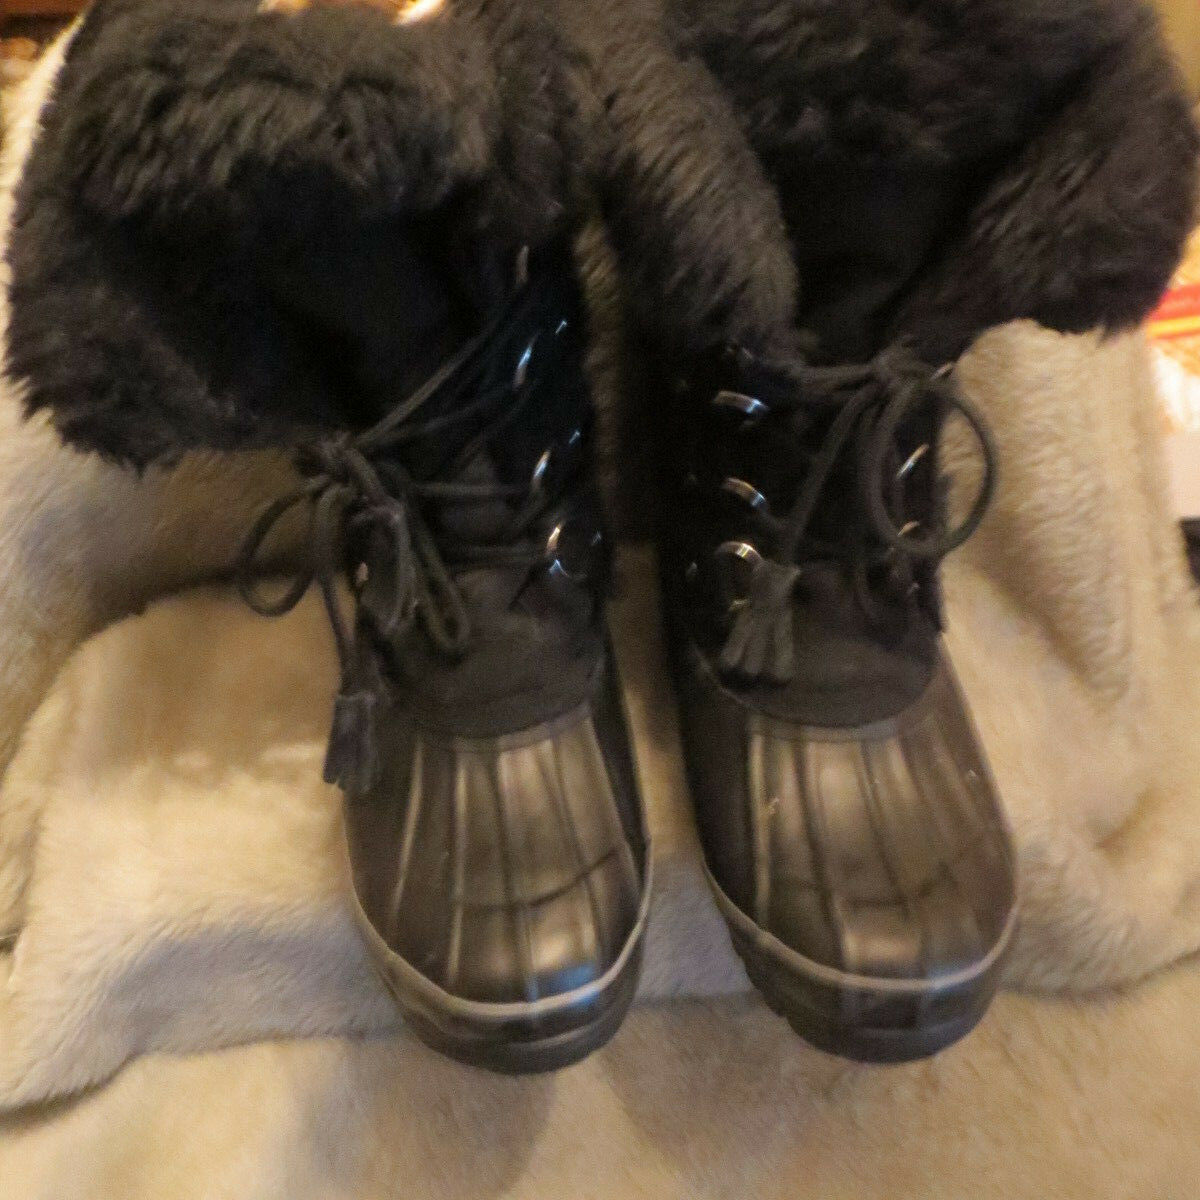 KHOMBU 744065 Nordic Winter Insulated Boot Mukluk Suede Faux Fur Black Size